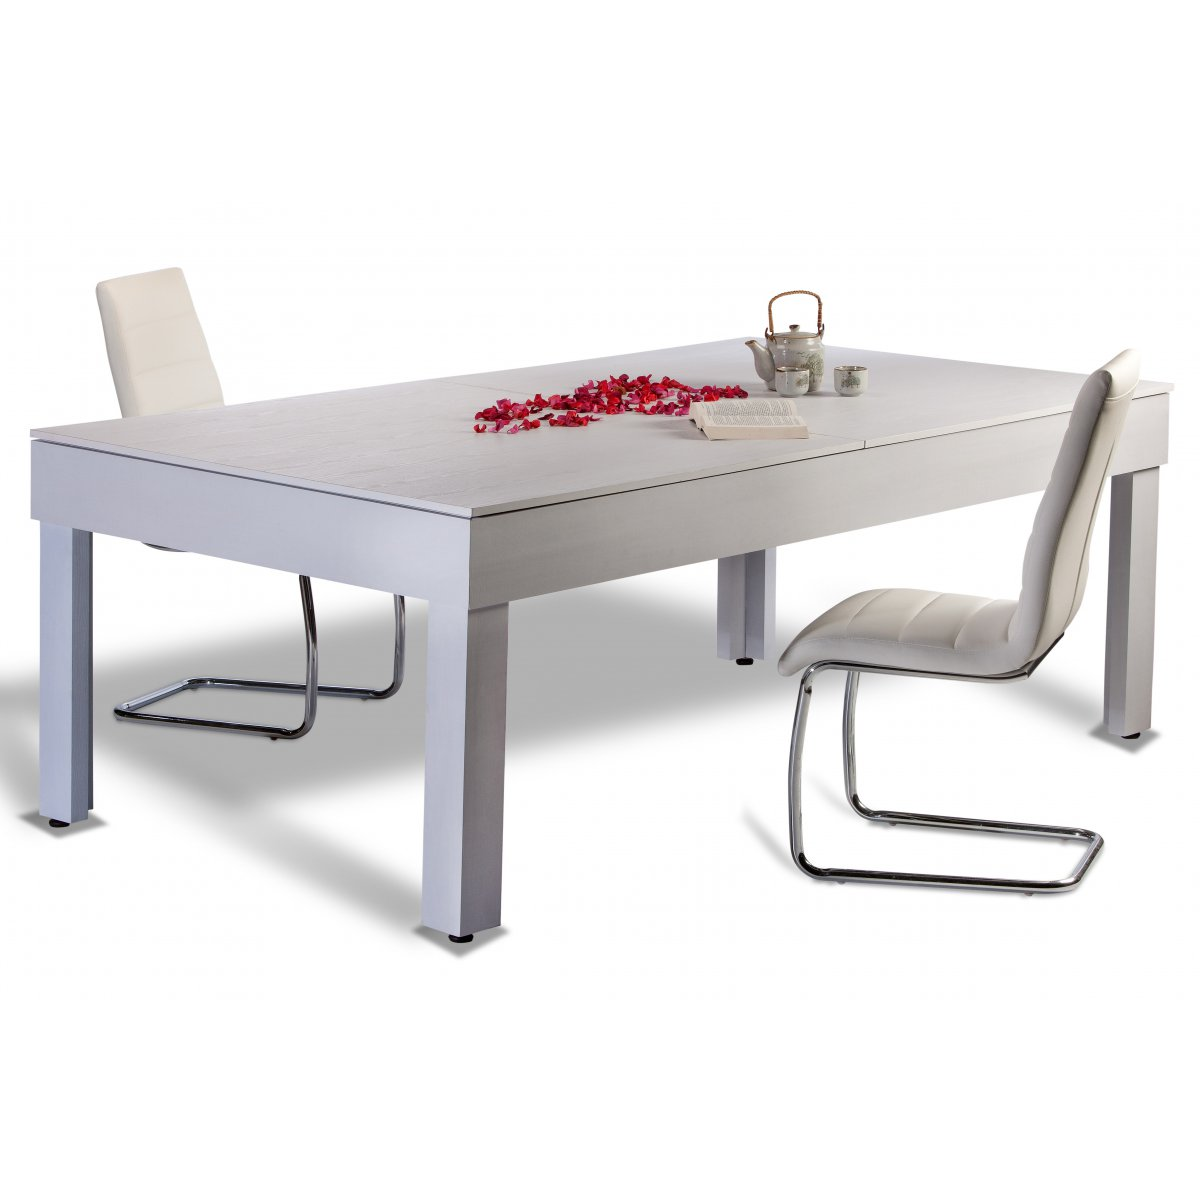 Table rabattable cuisine paris table salon transformable - Table basse convertible en table a manger ...